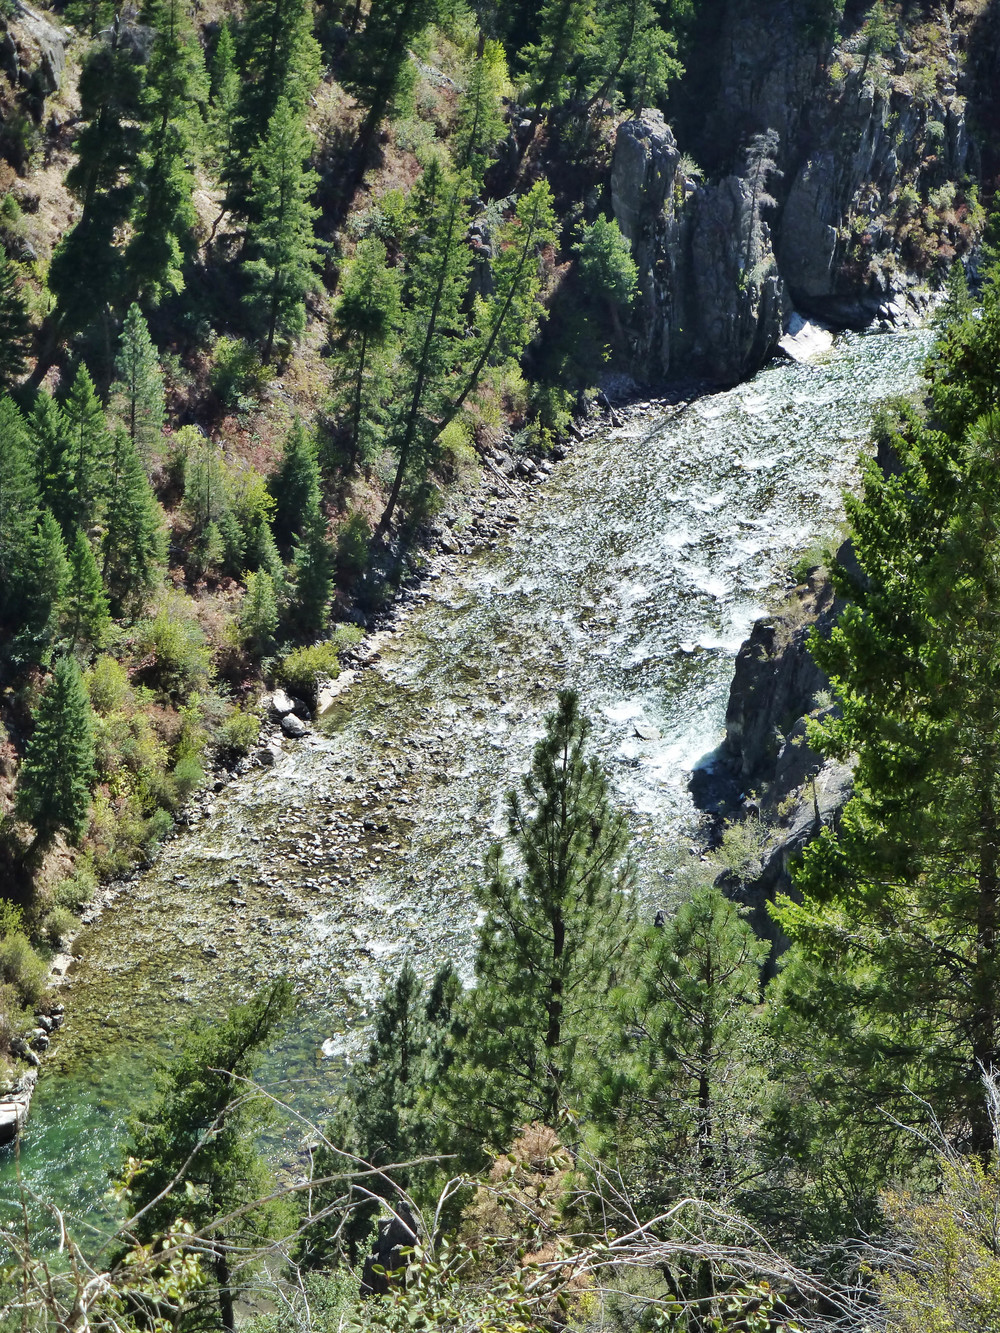 The Payette River